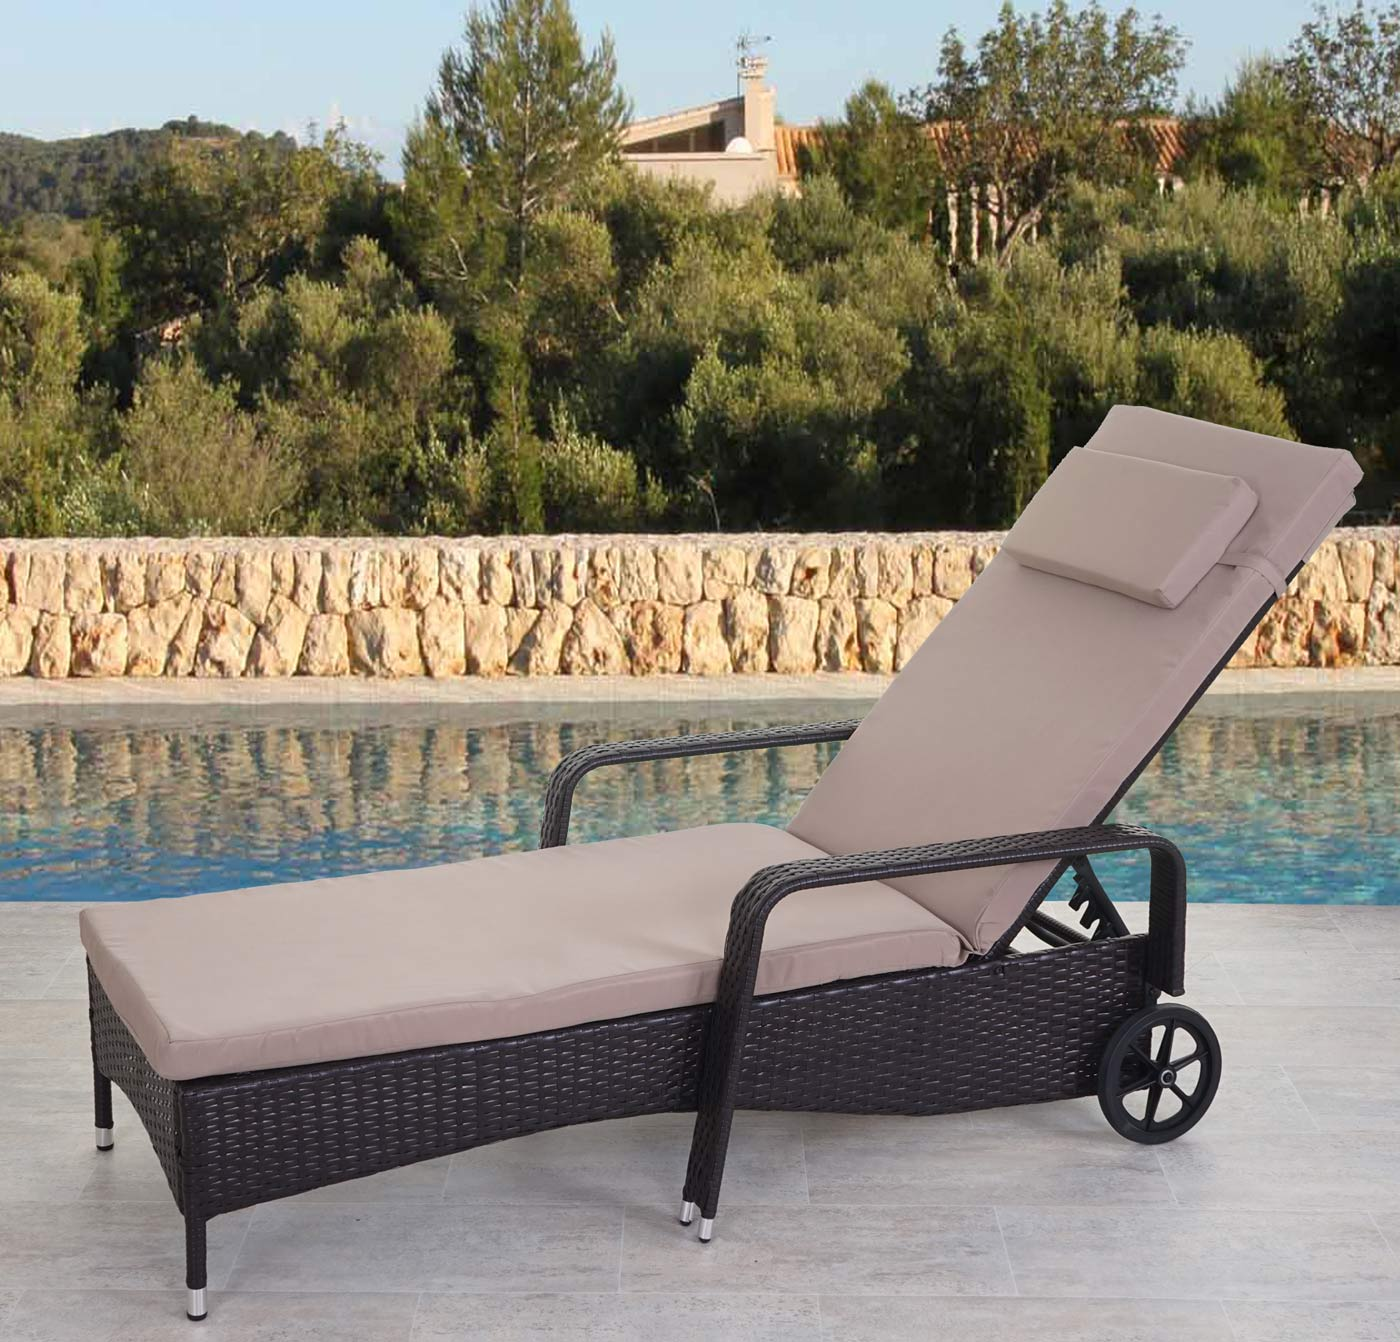 poly rattan sonnenliege carrara relaxliege gartenliege liege alu ebay. Black Bedroom Furniture Sets. Home Design Ideas